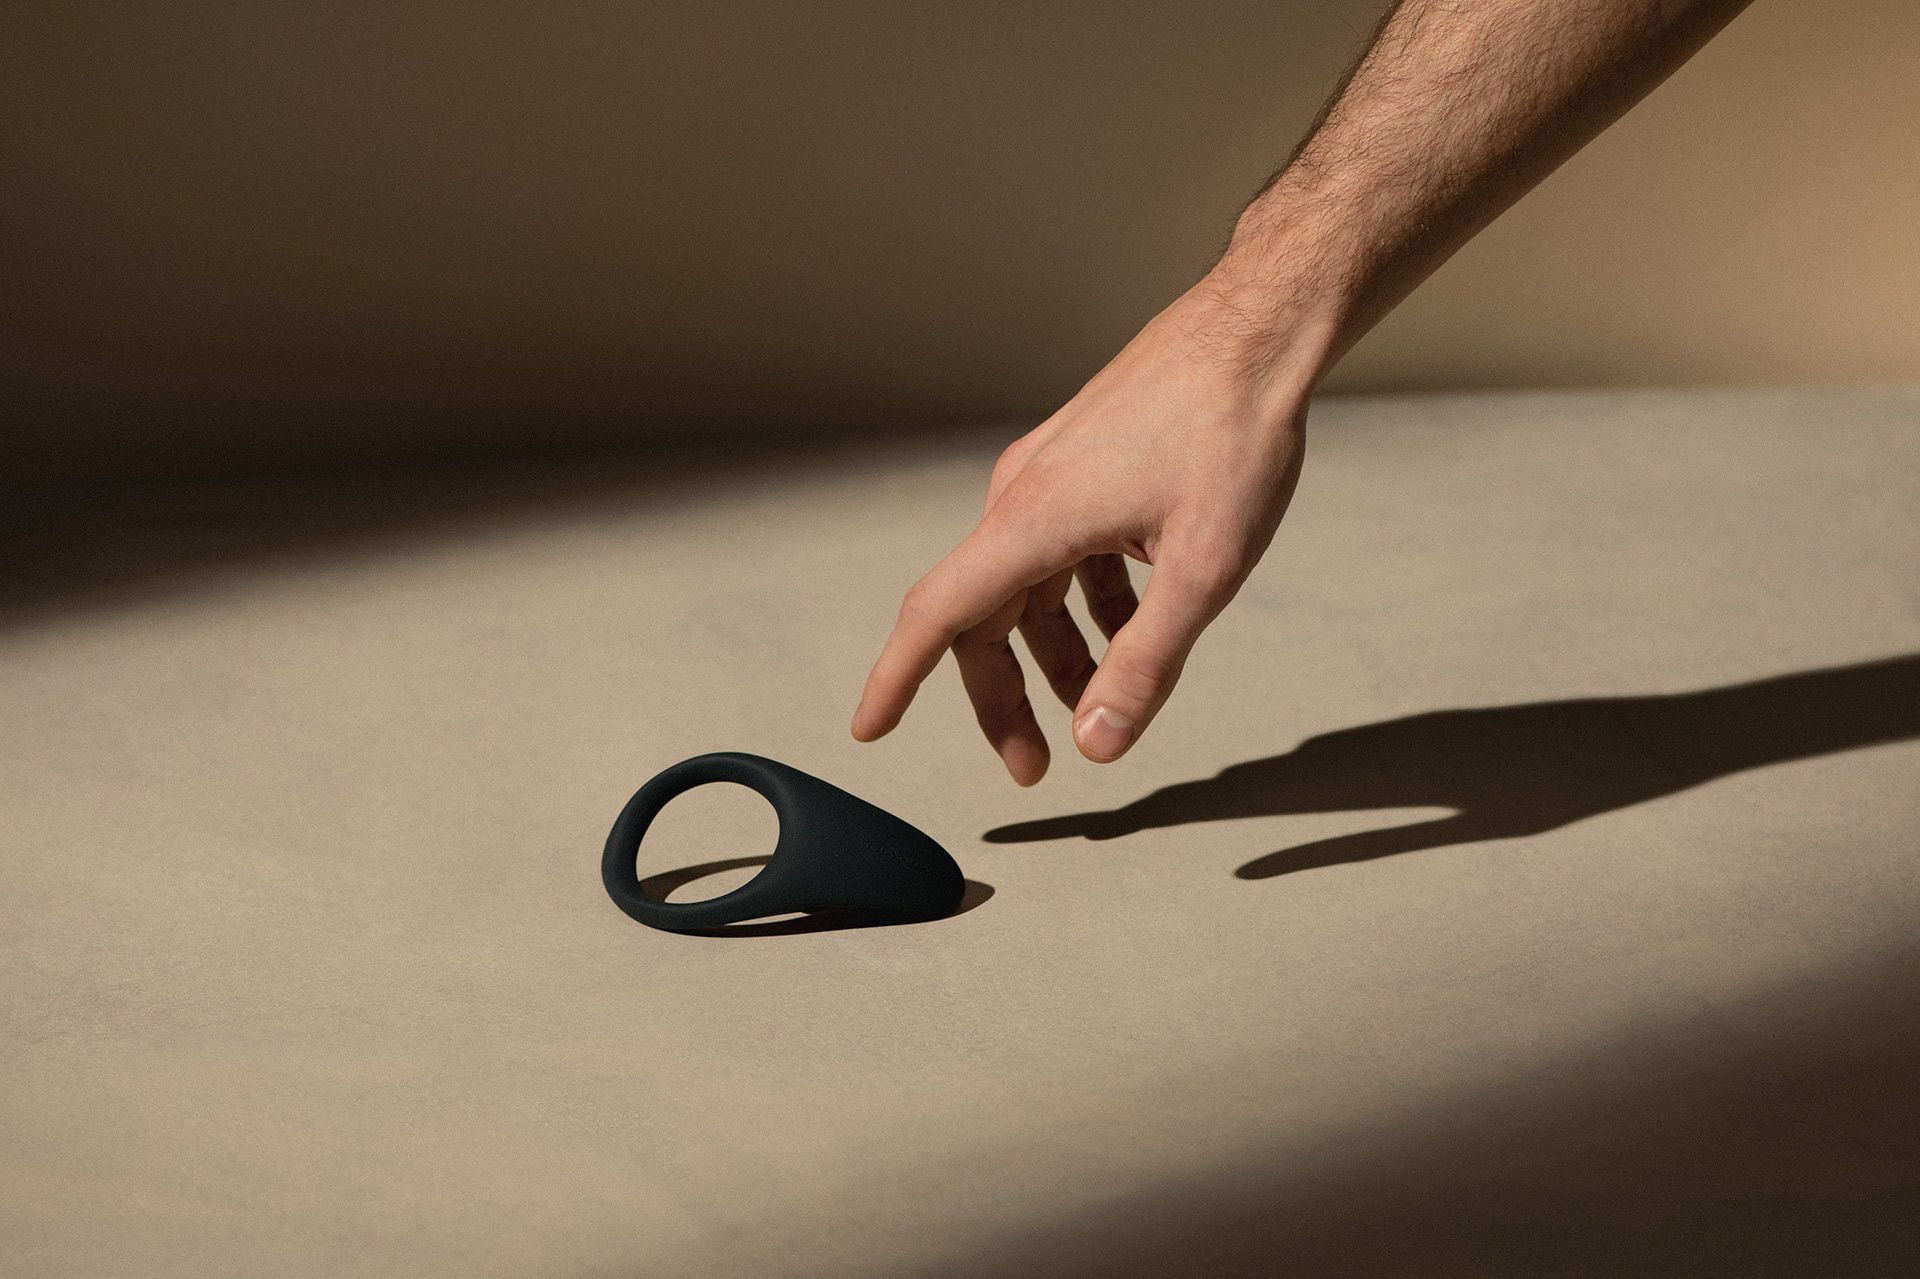 Beige chiaroscuro decor with a hand reaching to a black matt vibrator penis ring.